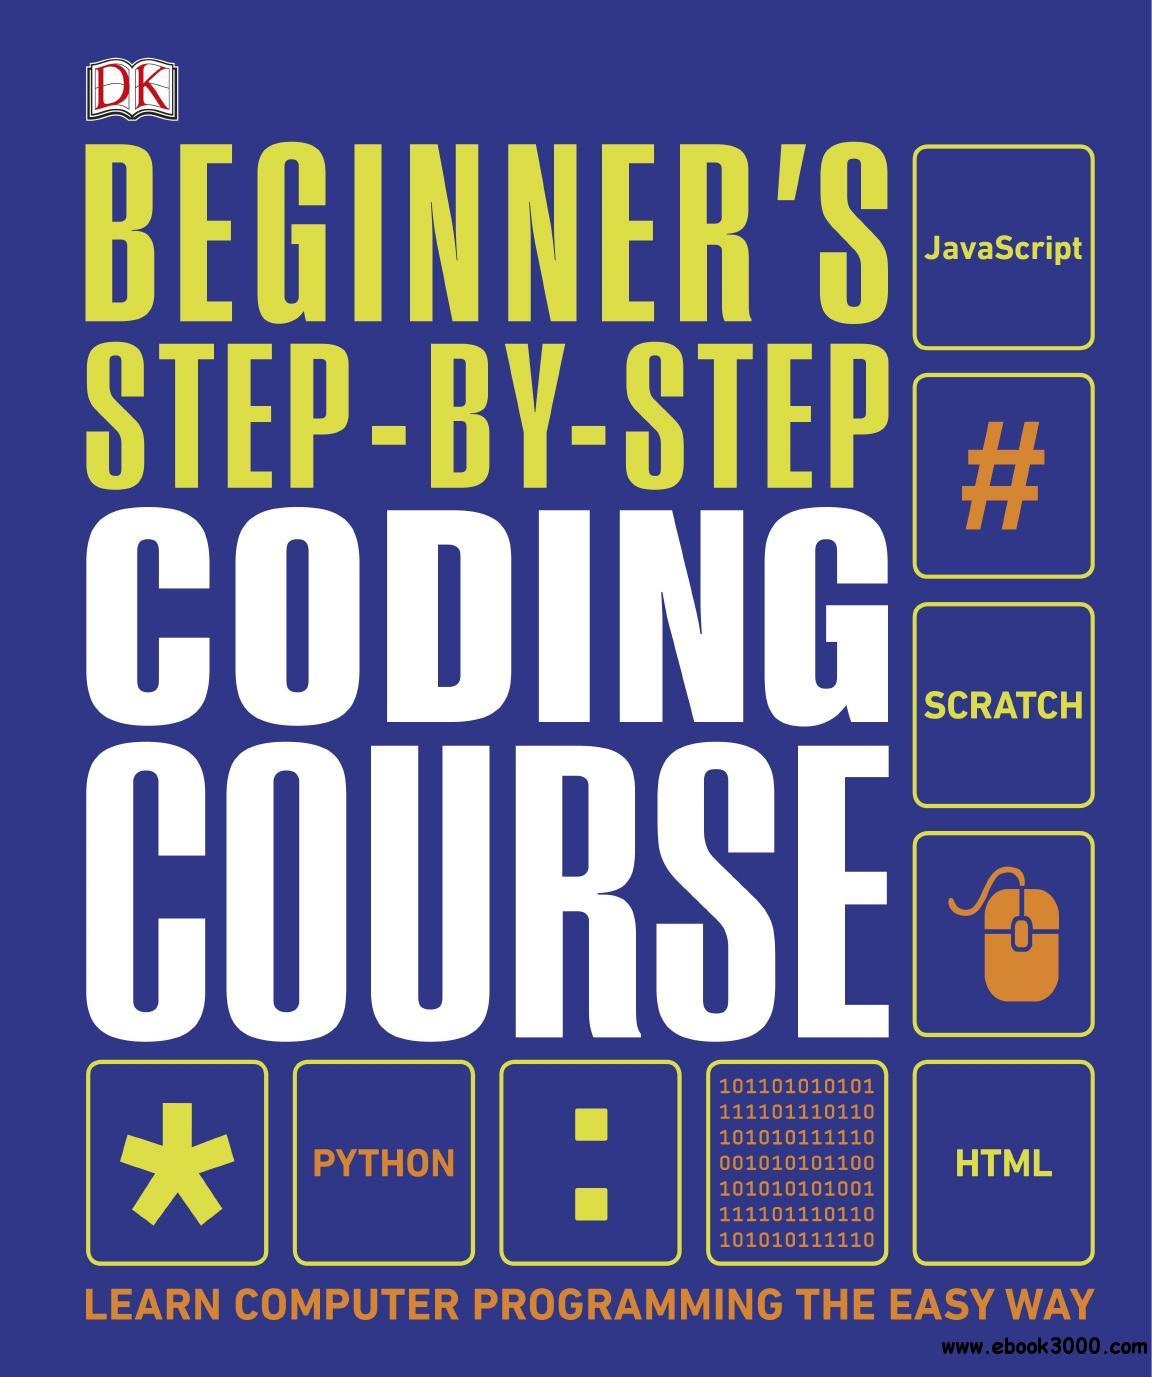 Beginner's Step-by-Step Coding Course: Learn Computer Programming the Easy Way, UK Edition